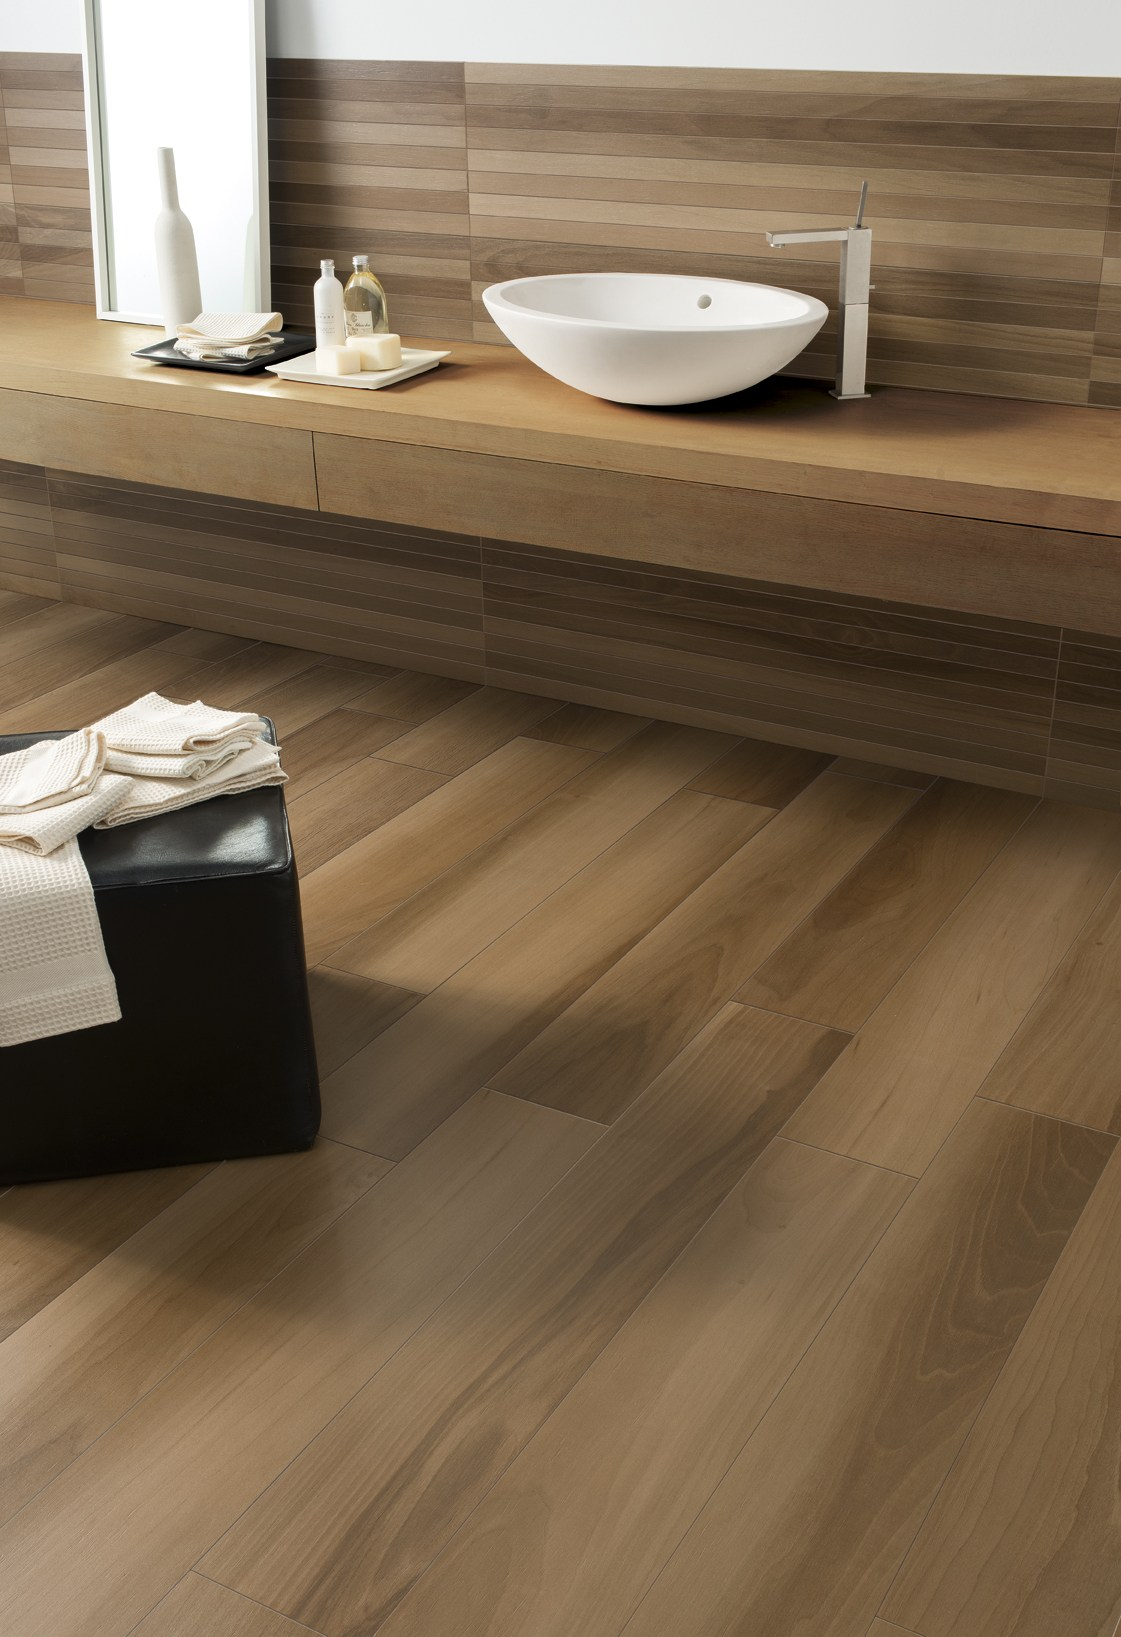 Verlegearten Keramische Platten Wall Floor Tiles With Wood Effect Life Walnut By Ceramiche